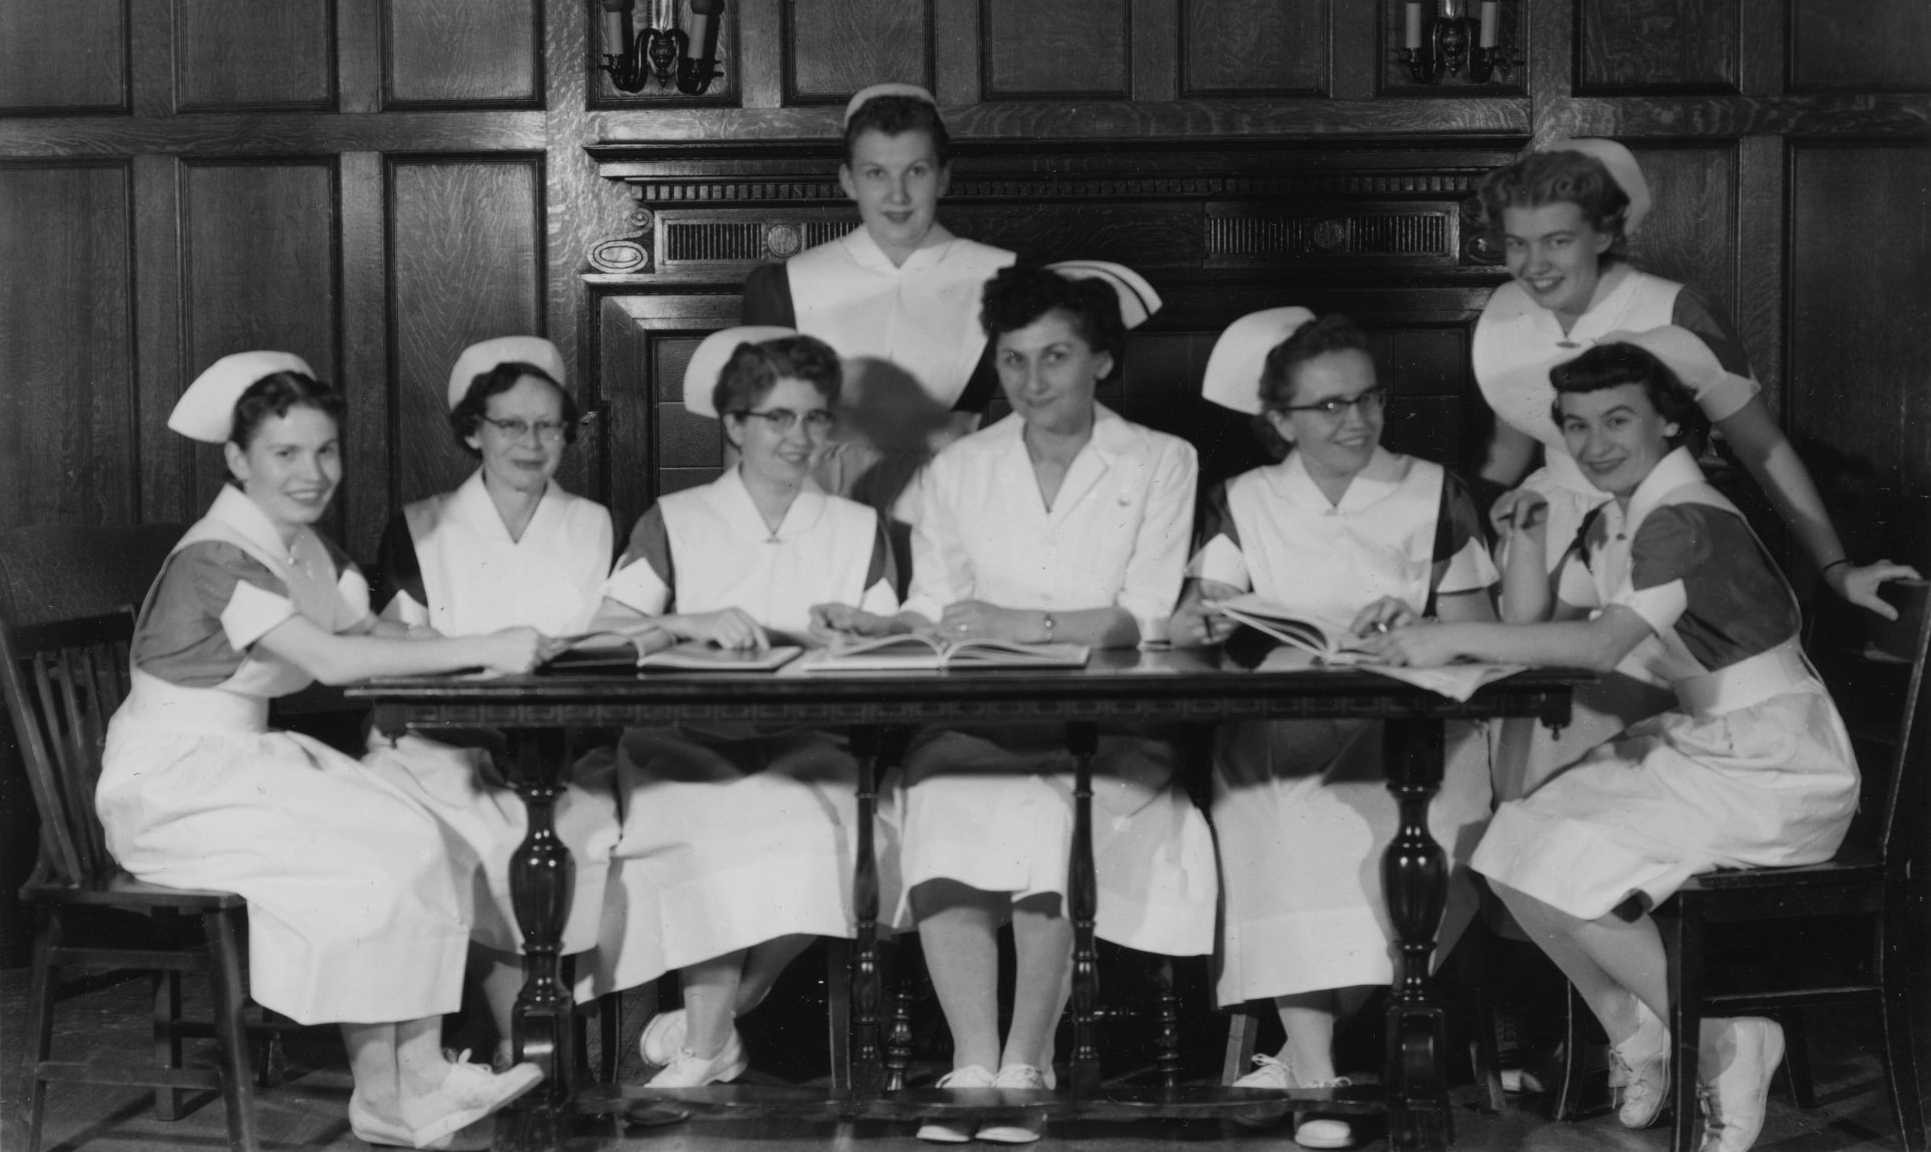 1950s image of a group of nurses sitting at a table